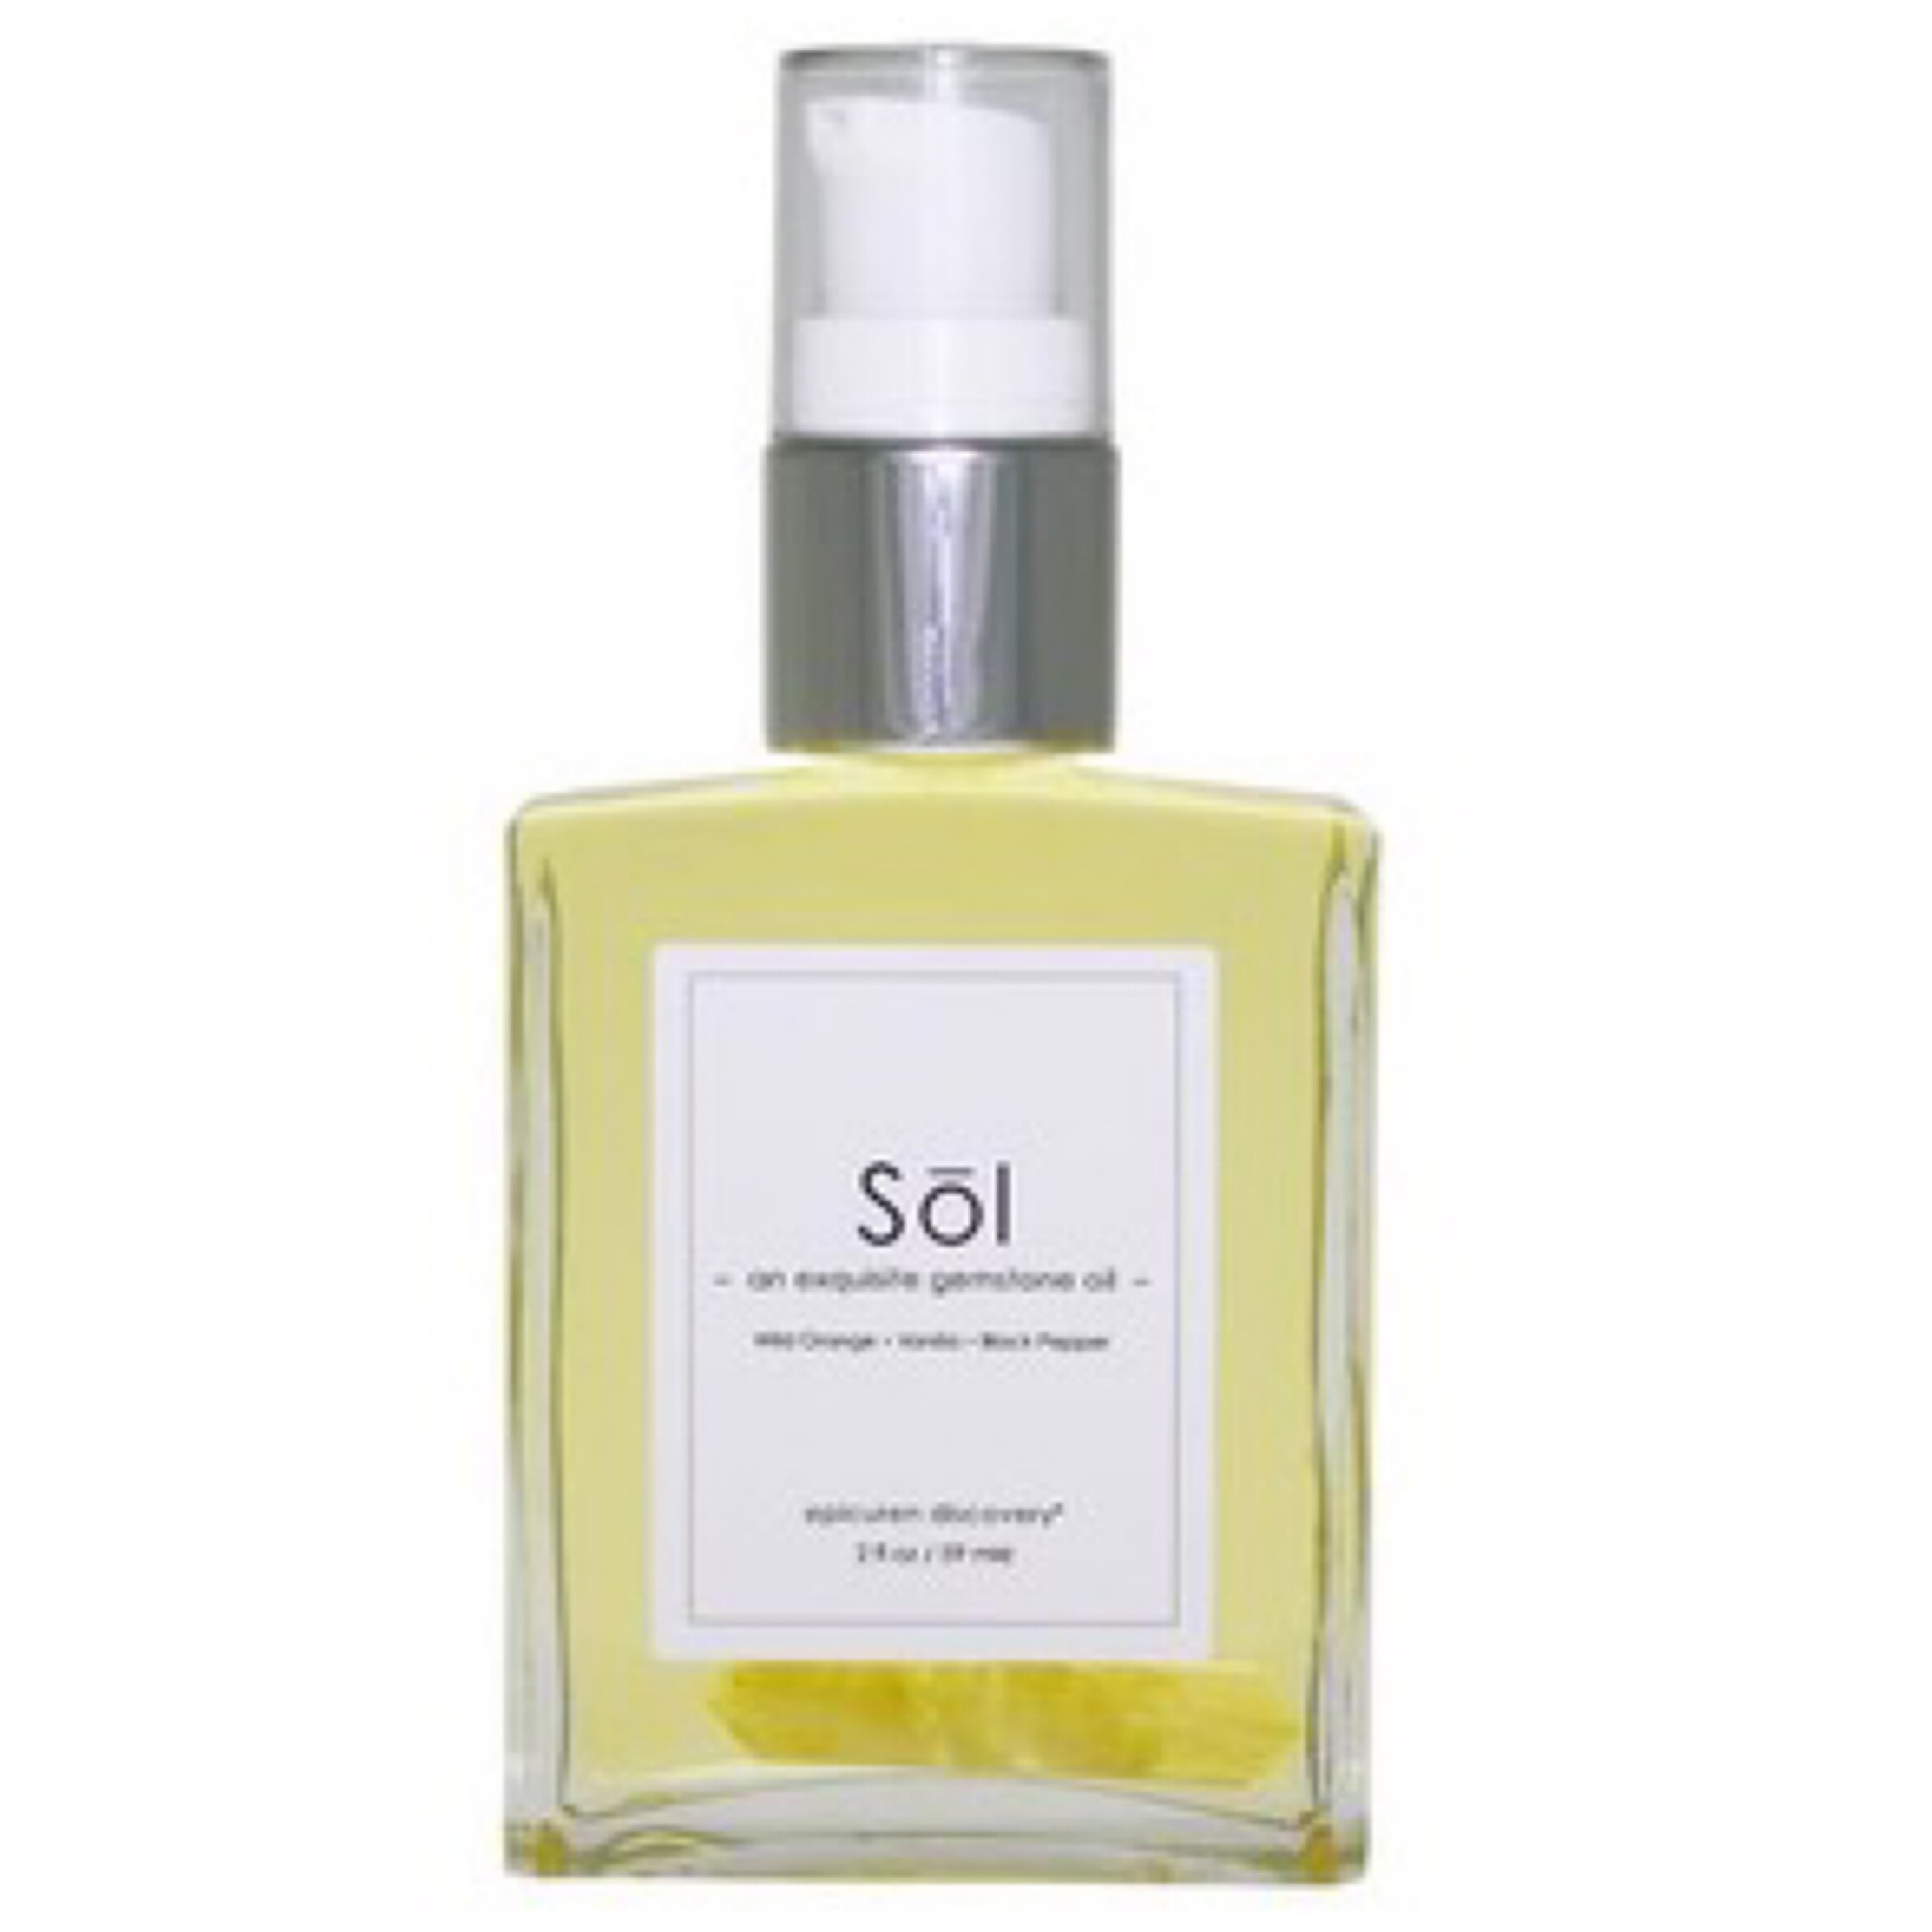 SOL Exquisite Gem-Stone Body Oil